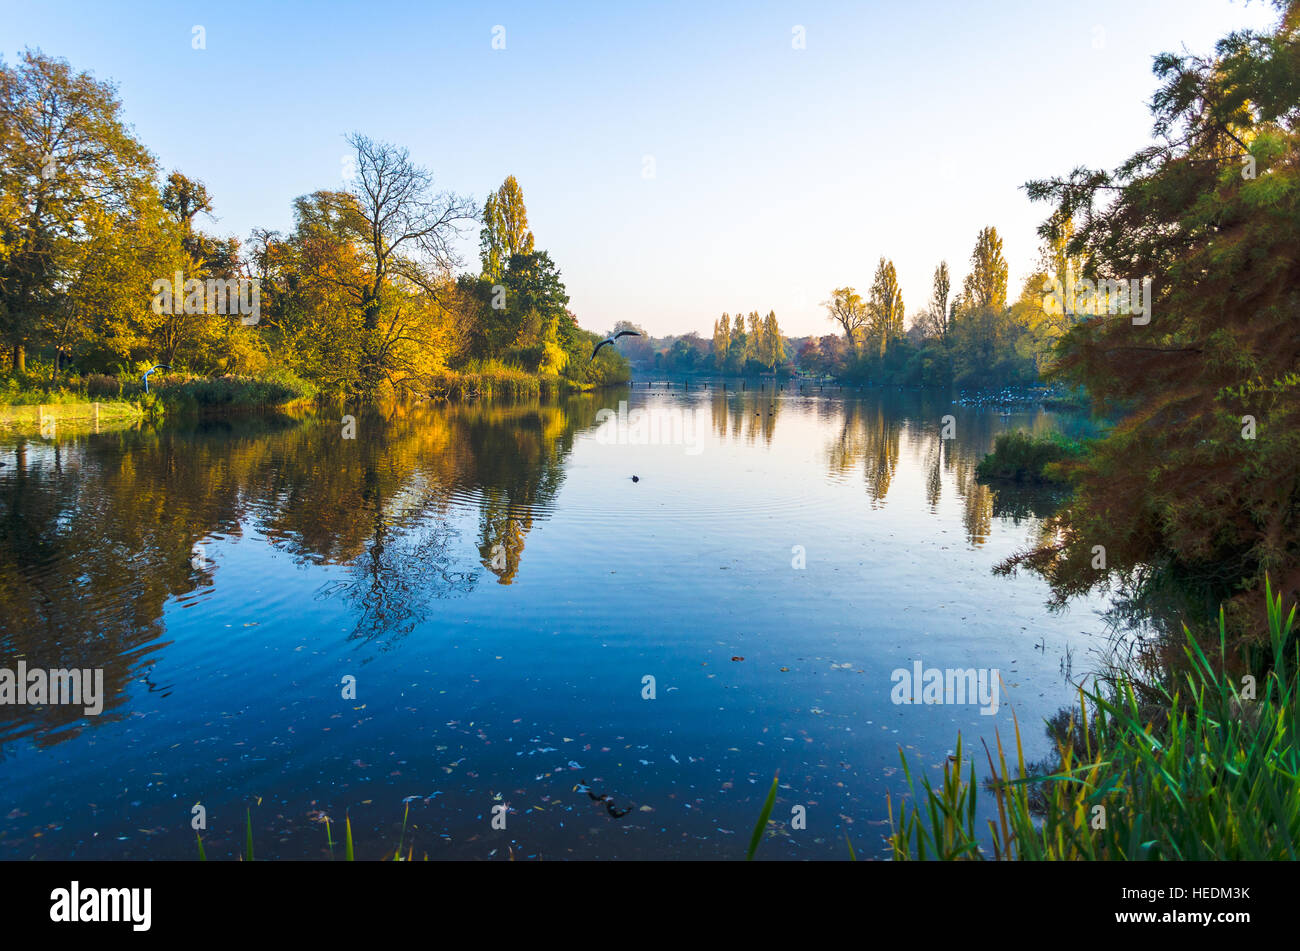 Vibrant autumn colours around a duck pond at Hyde Park, London - Stock Image